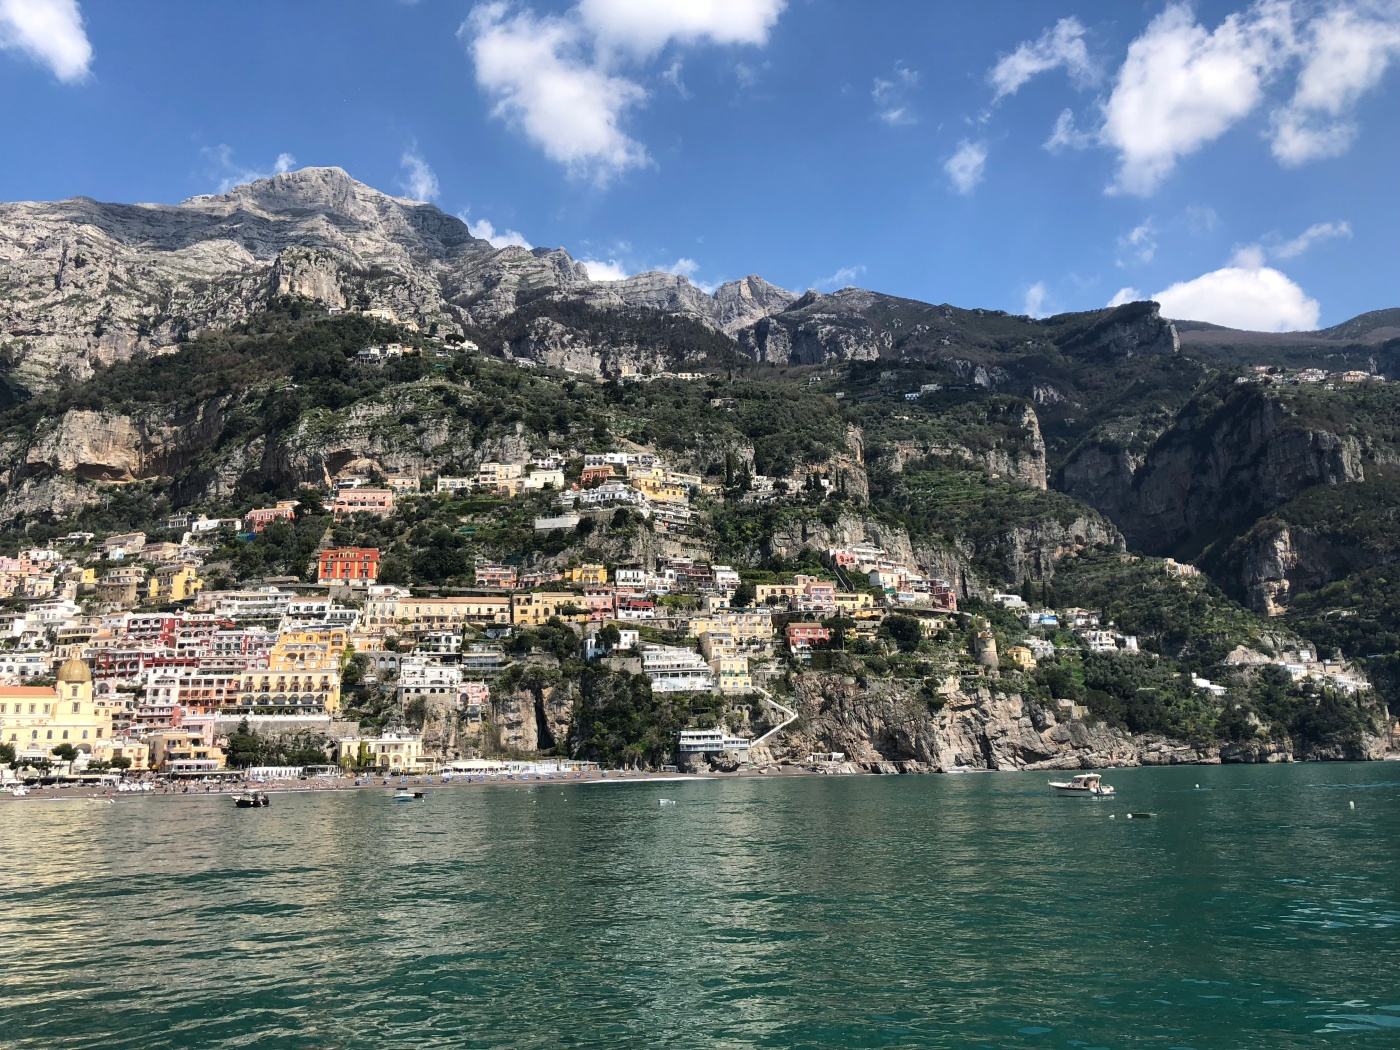 View of Positano, Italy from boat